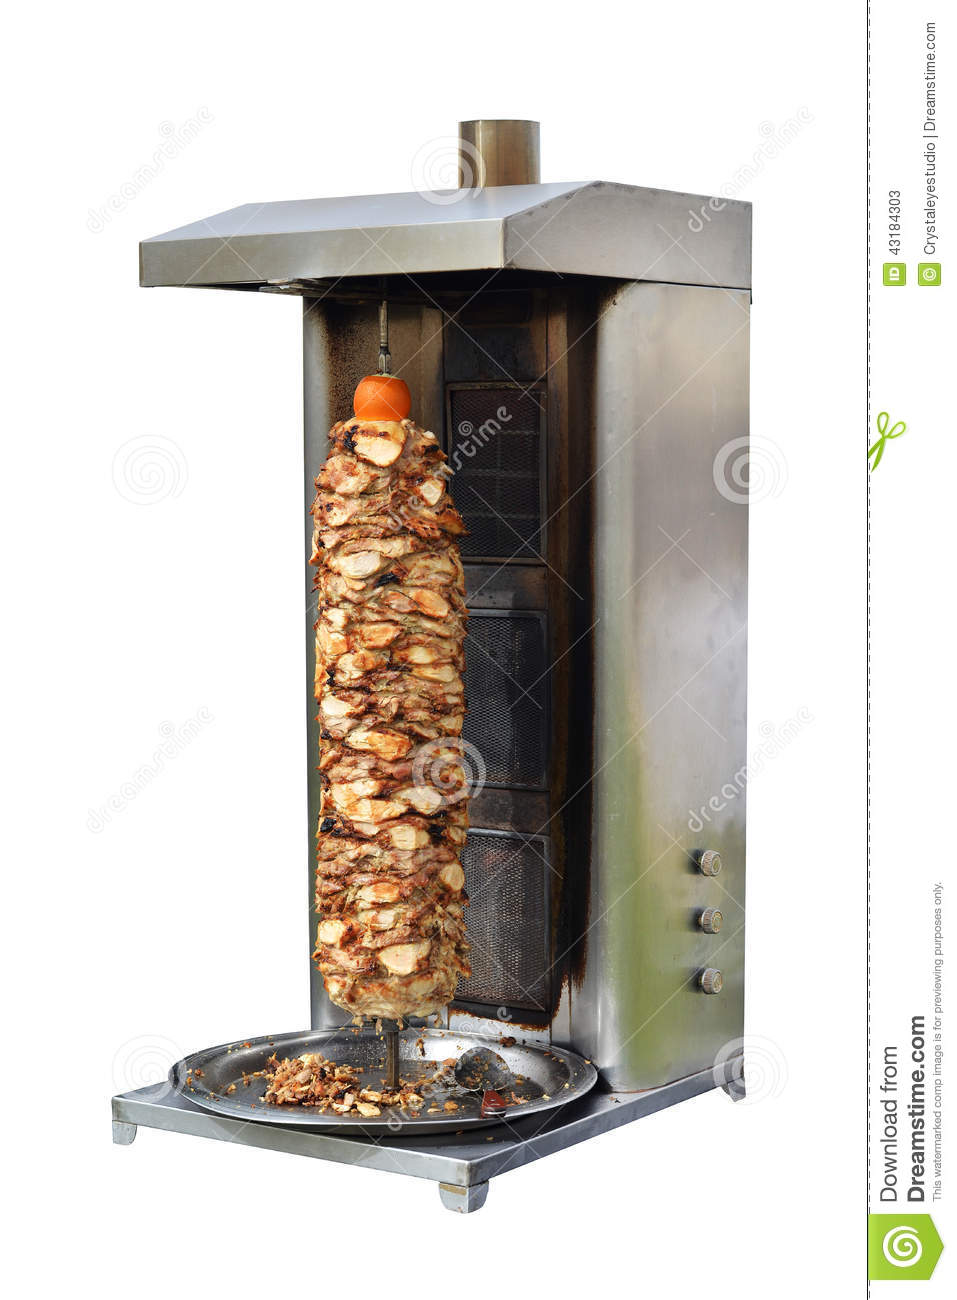 Shawarma Cooking In Vertical Spit Oven Stock Photo